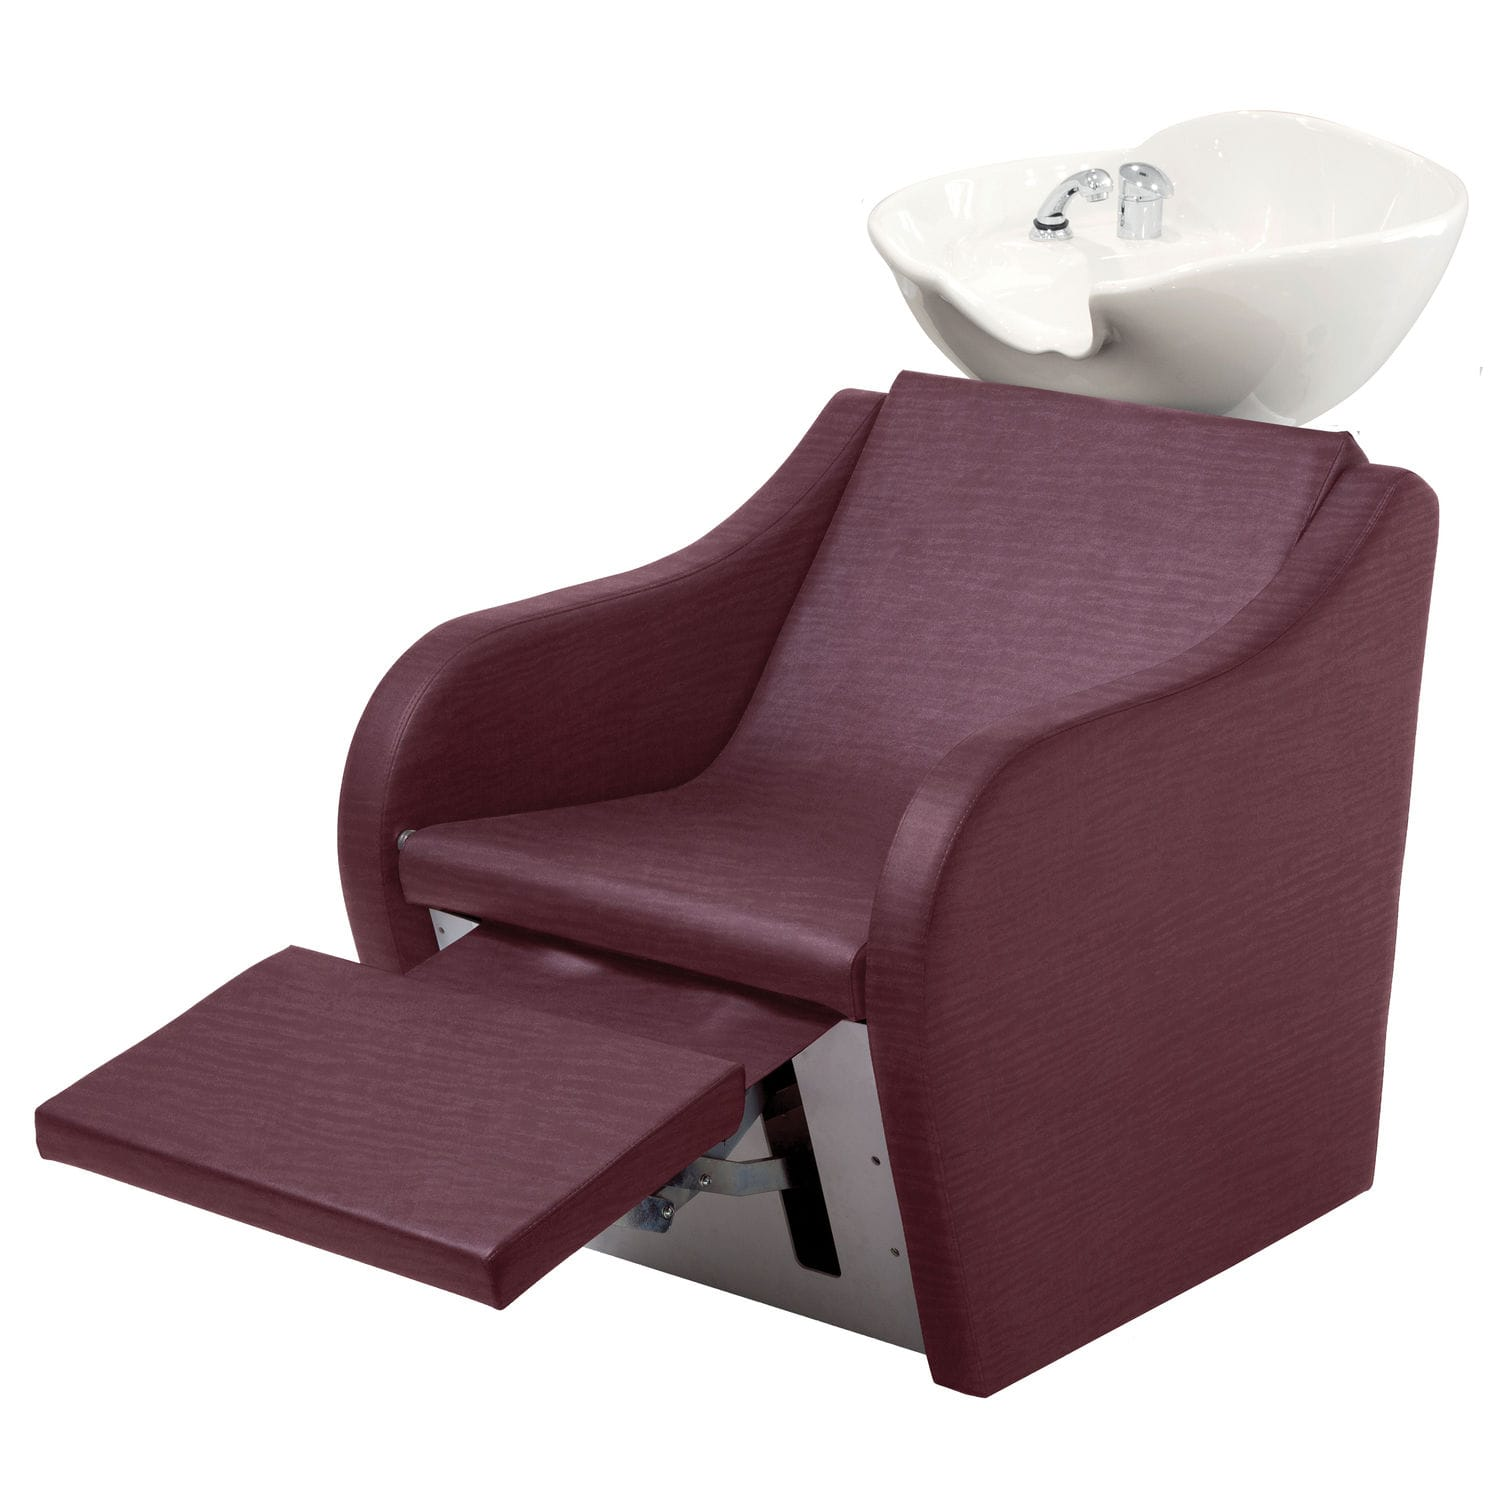 Shampoo chair with footrest SKY WASH SWING FORT 4594 Maletti